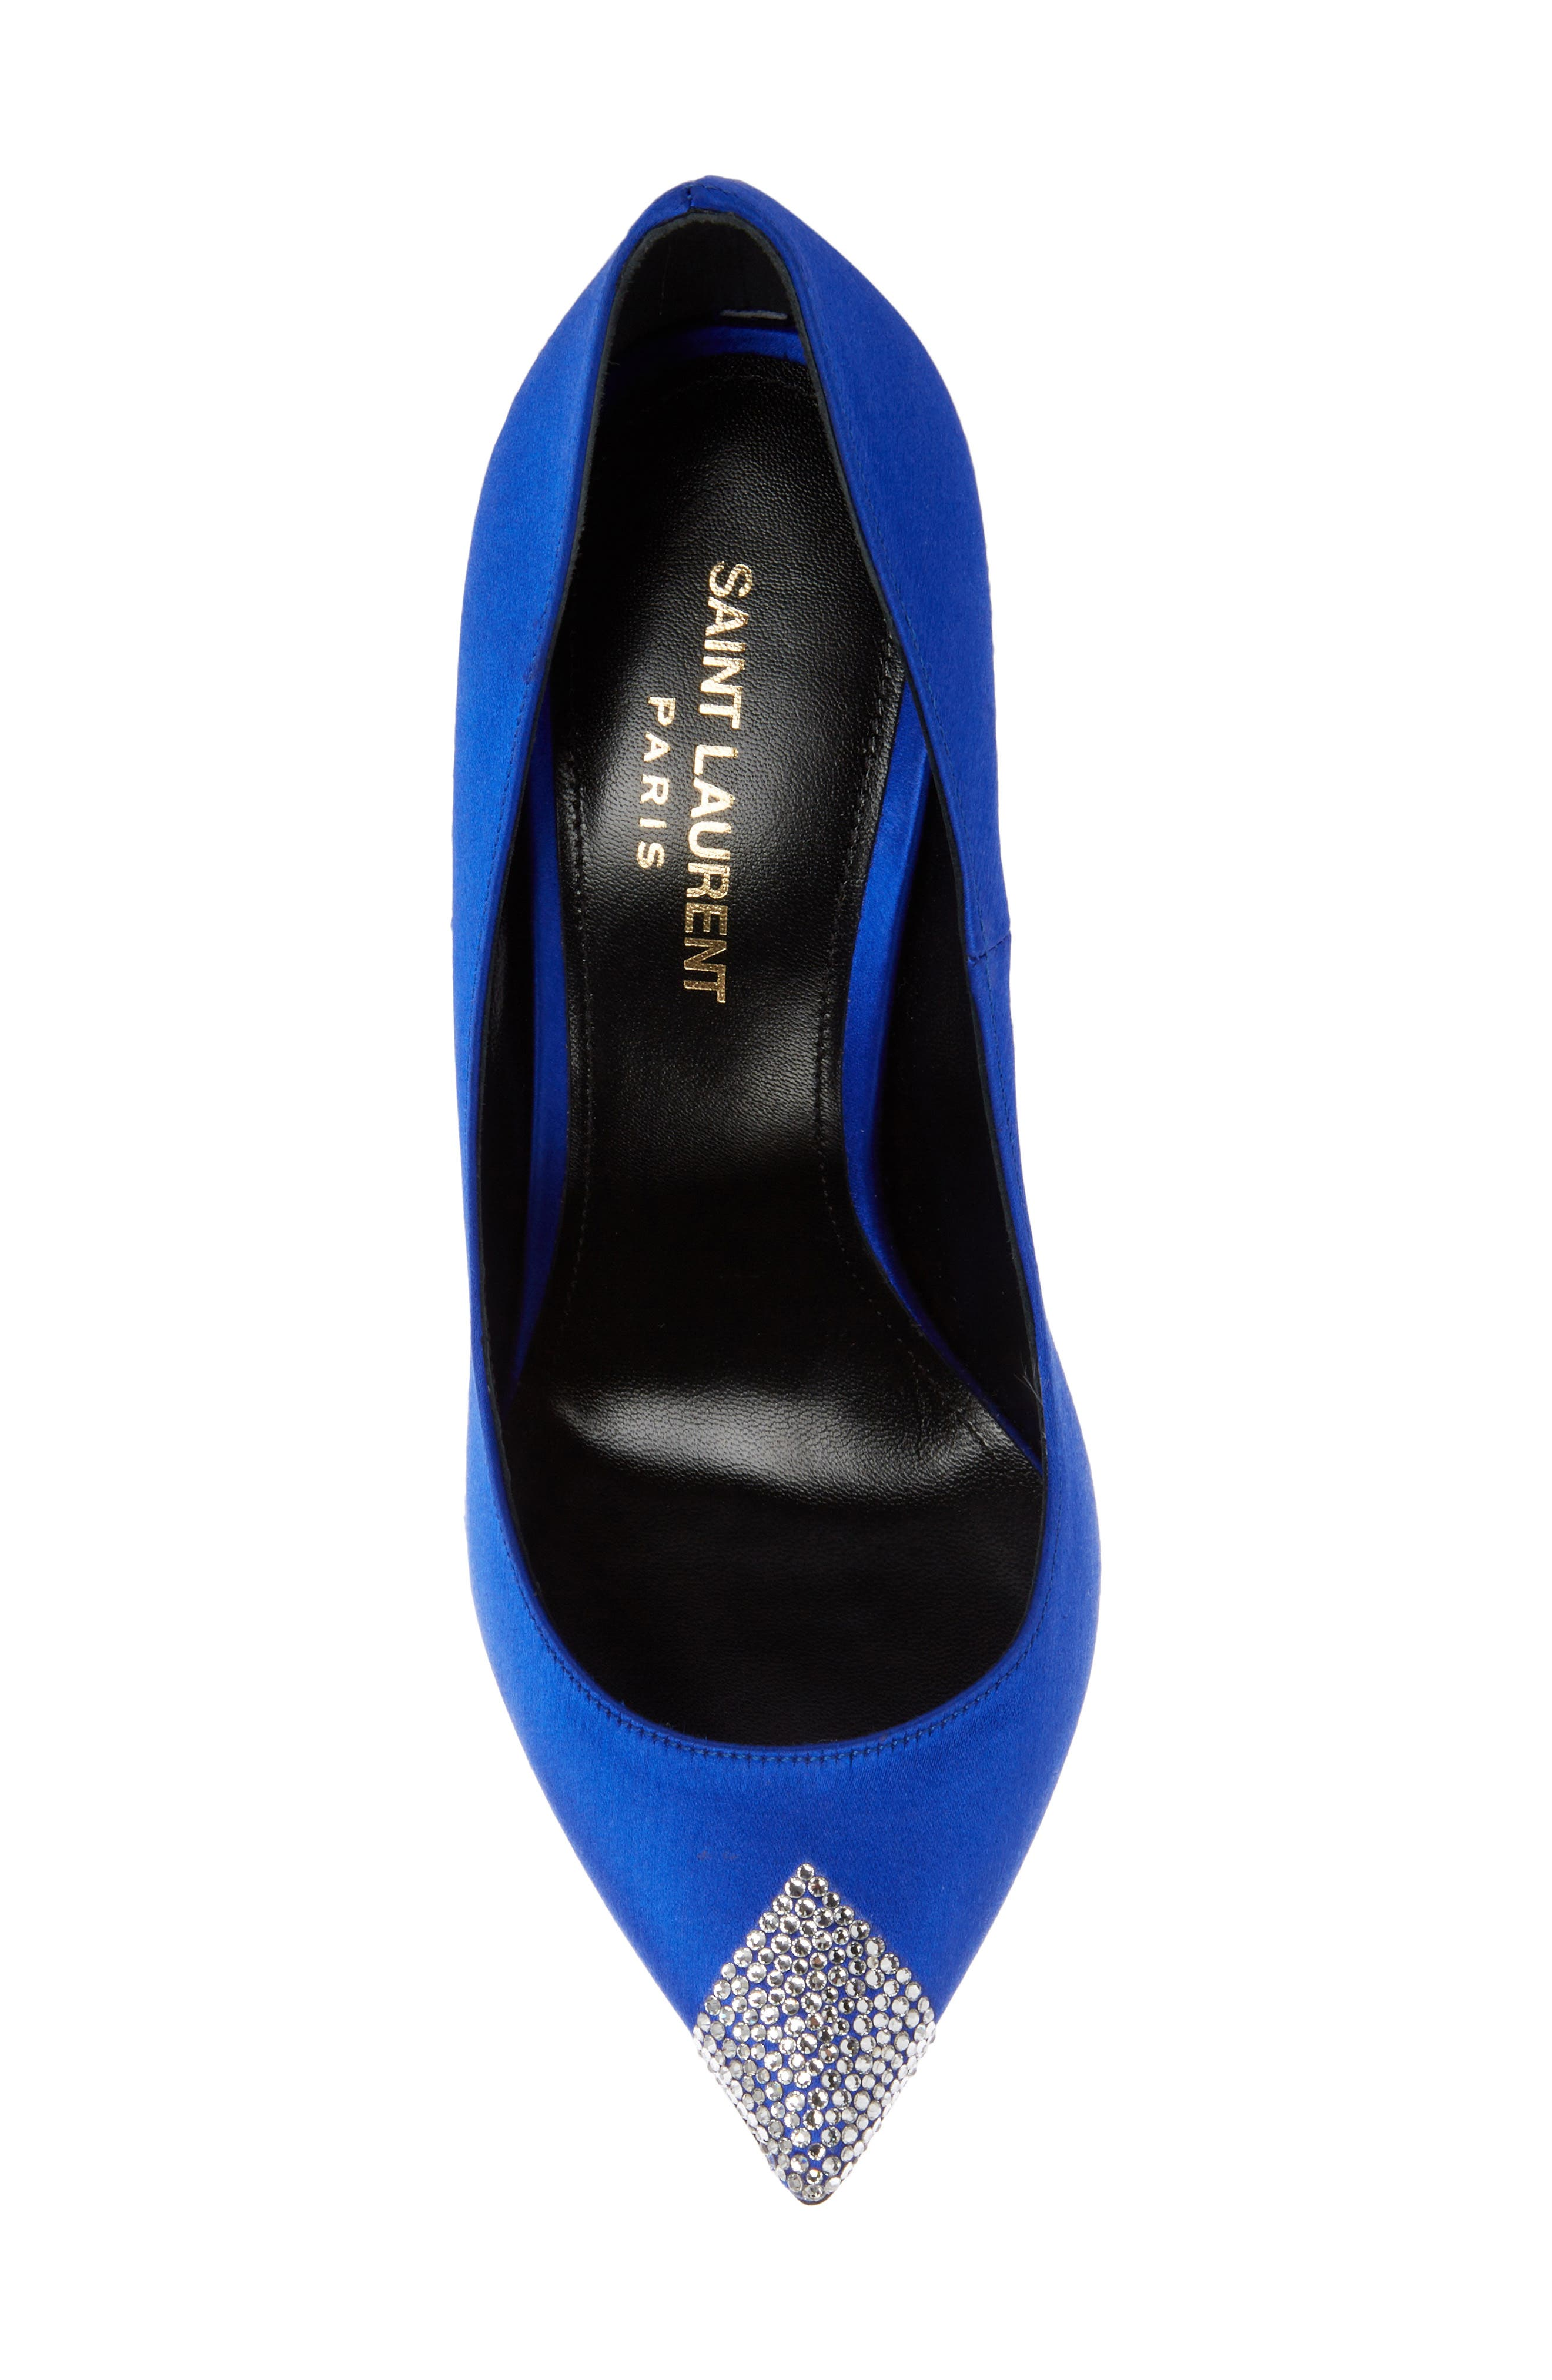 Tower Crystal Pointy Toe Pump,                             Alternate thumbnail 4, color,                             400